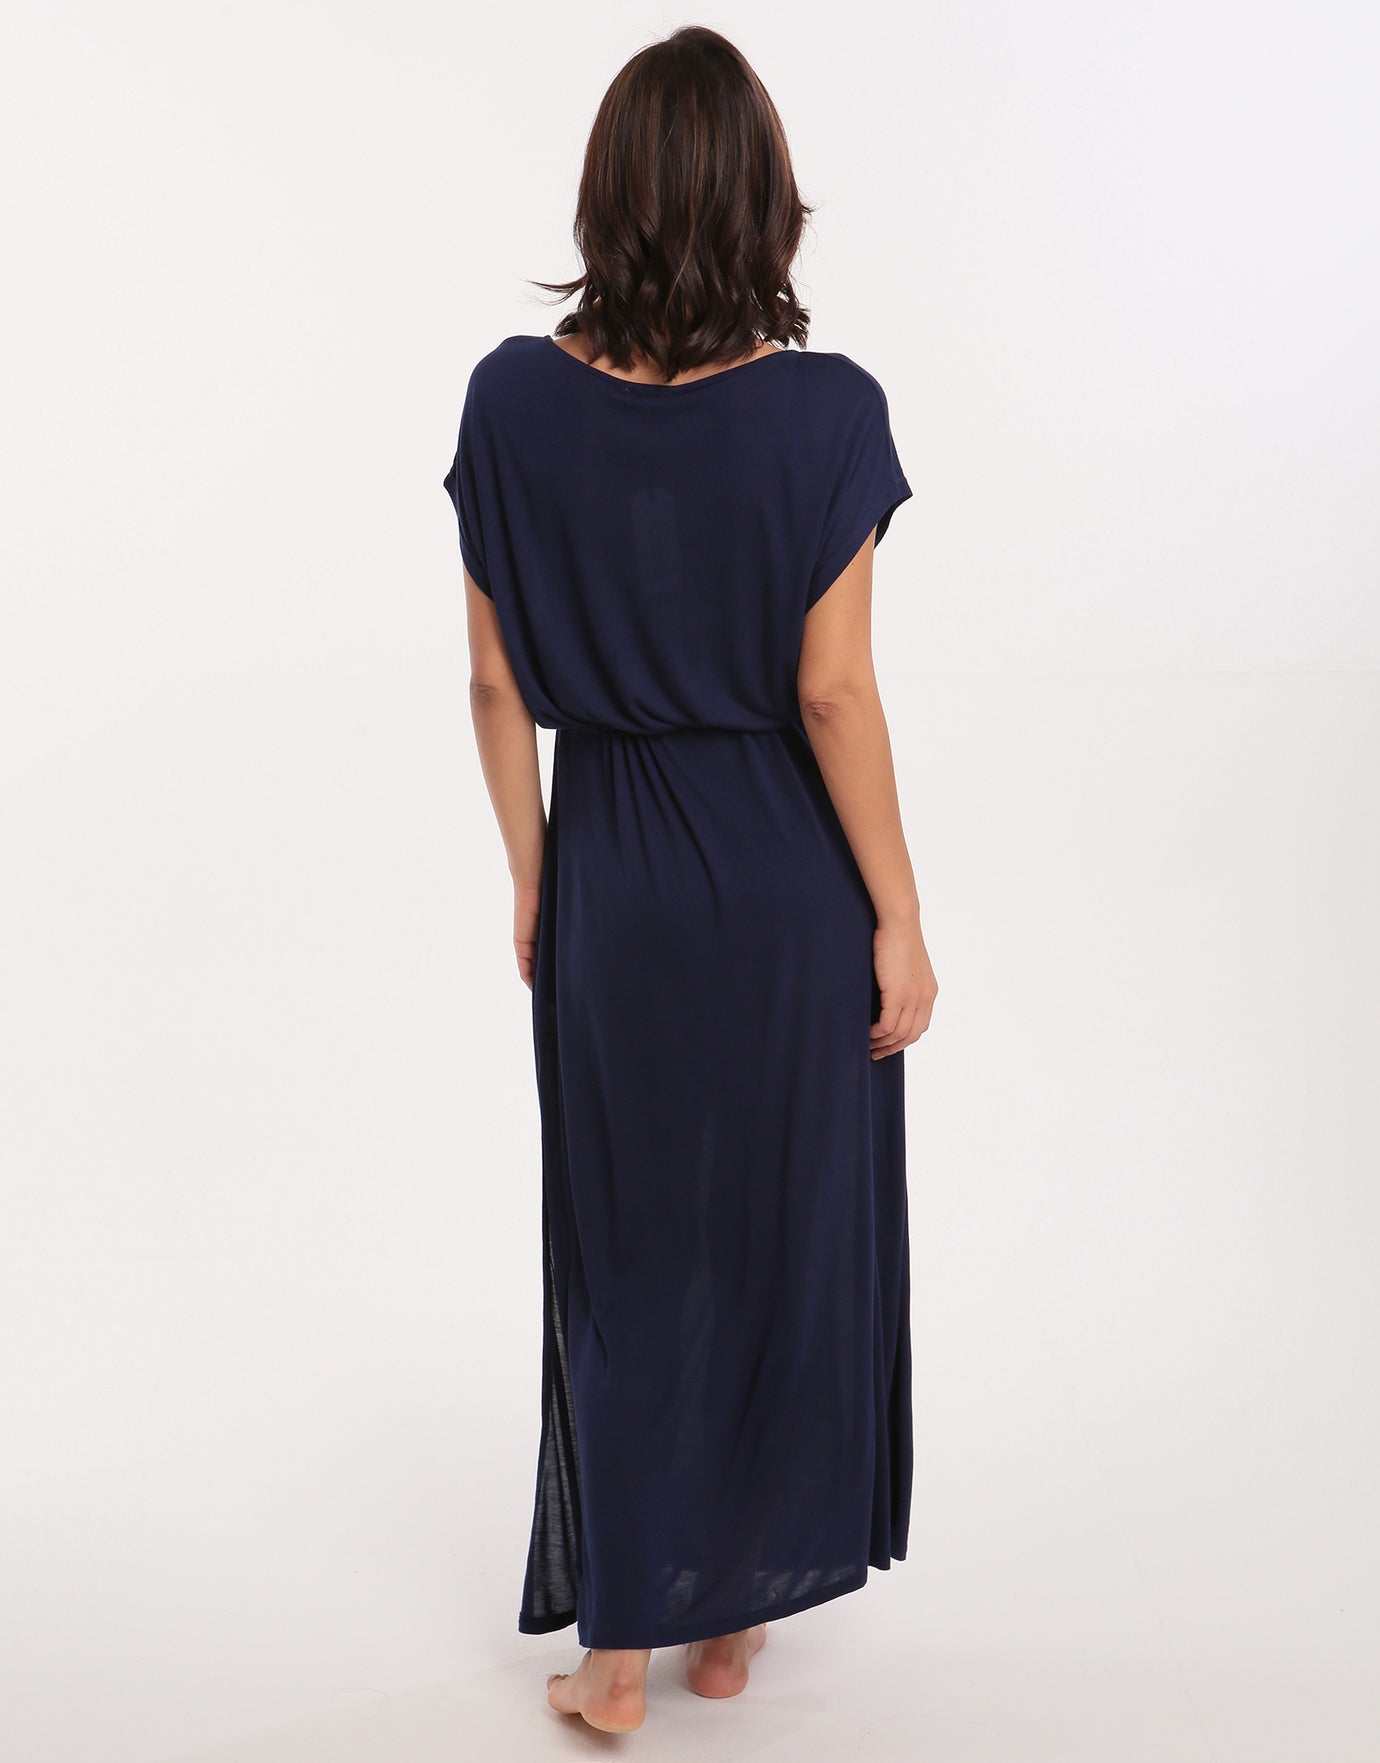 Pia Rossini Evora Maxi Dress - Navy